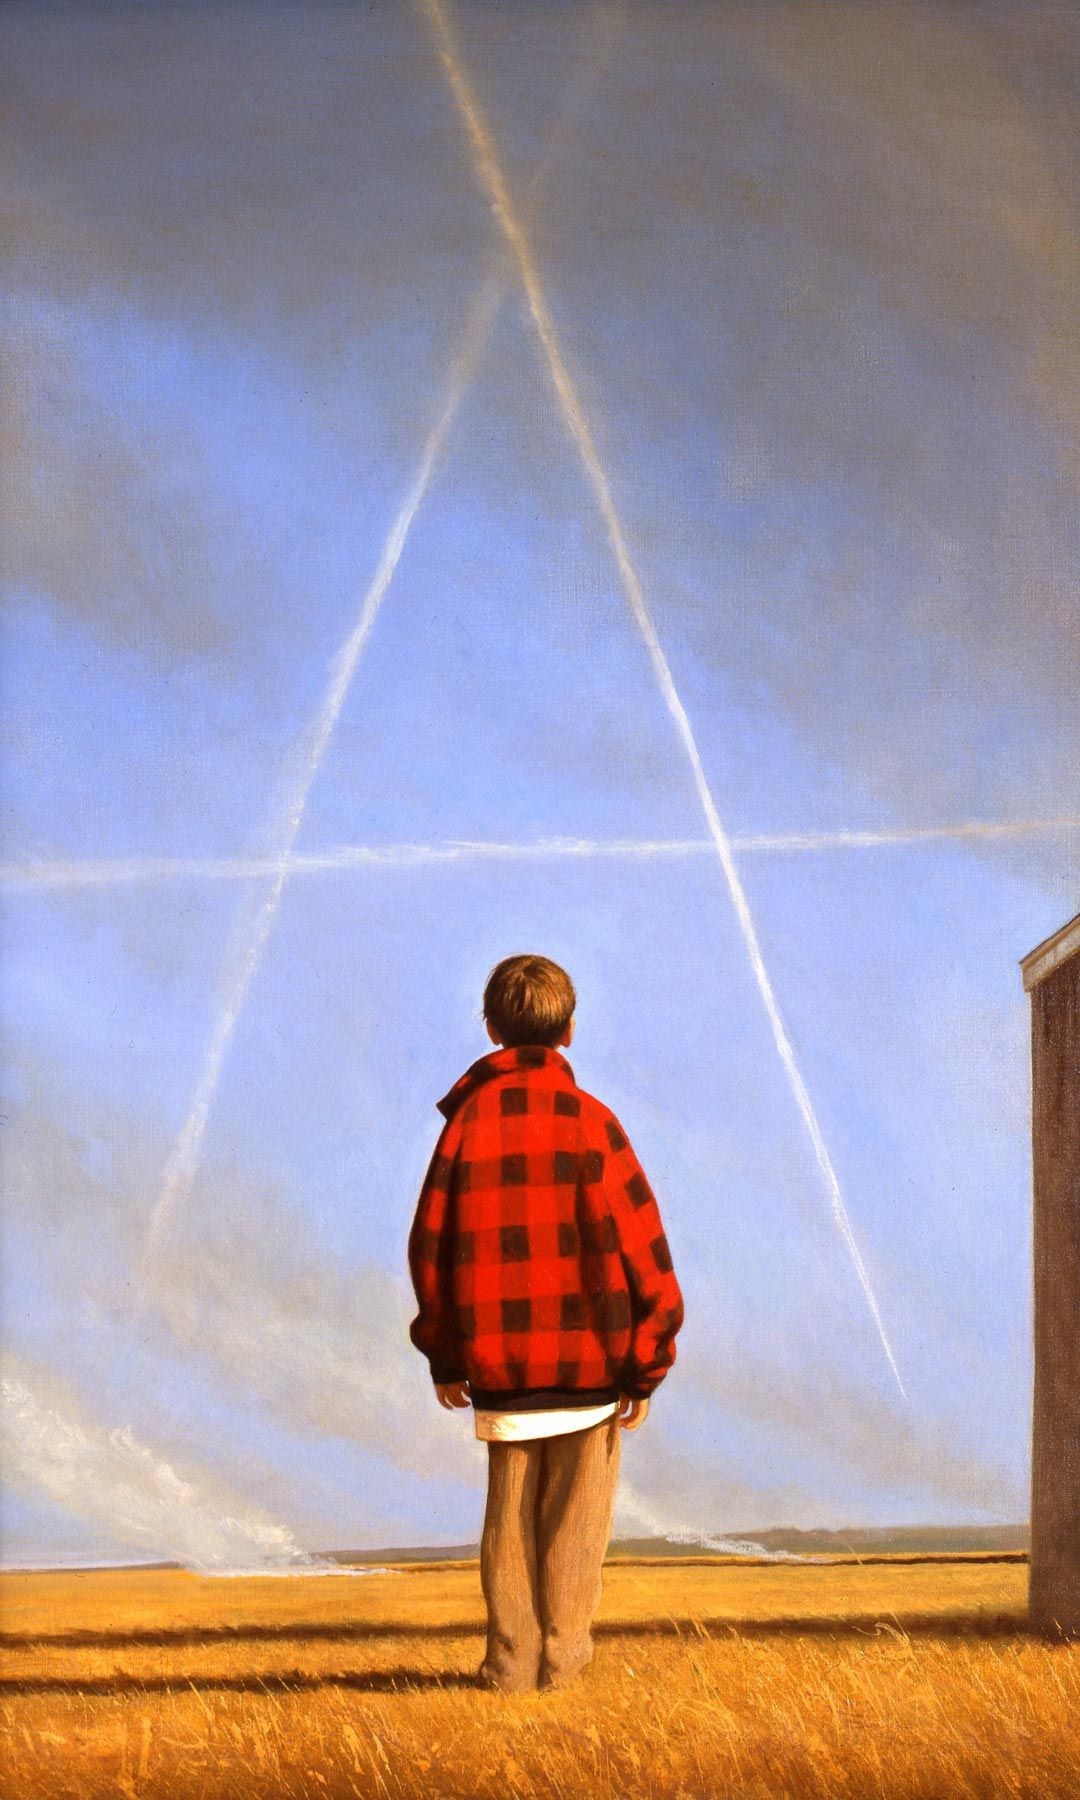 Bo Bartlett's work. If you're from Columbus, GA then you know Bo's work. Others pay attention. From the same terroir as Carson McCullers.